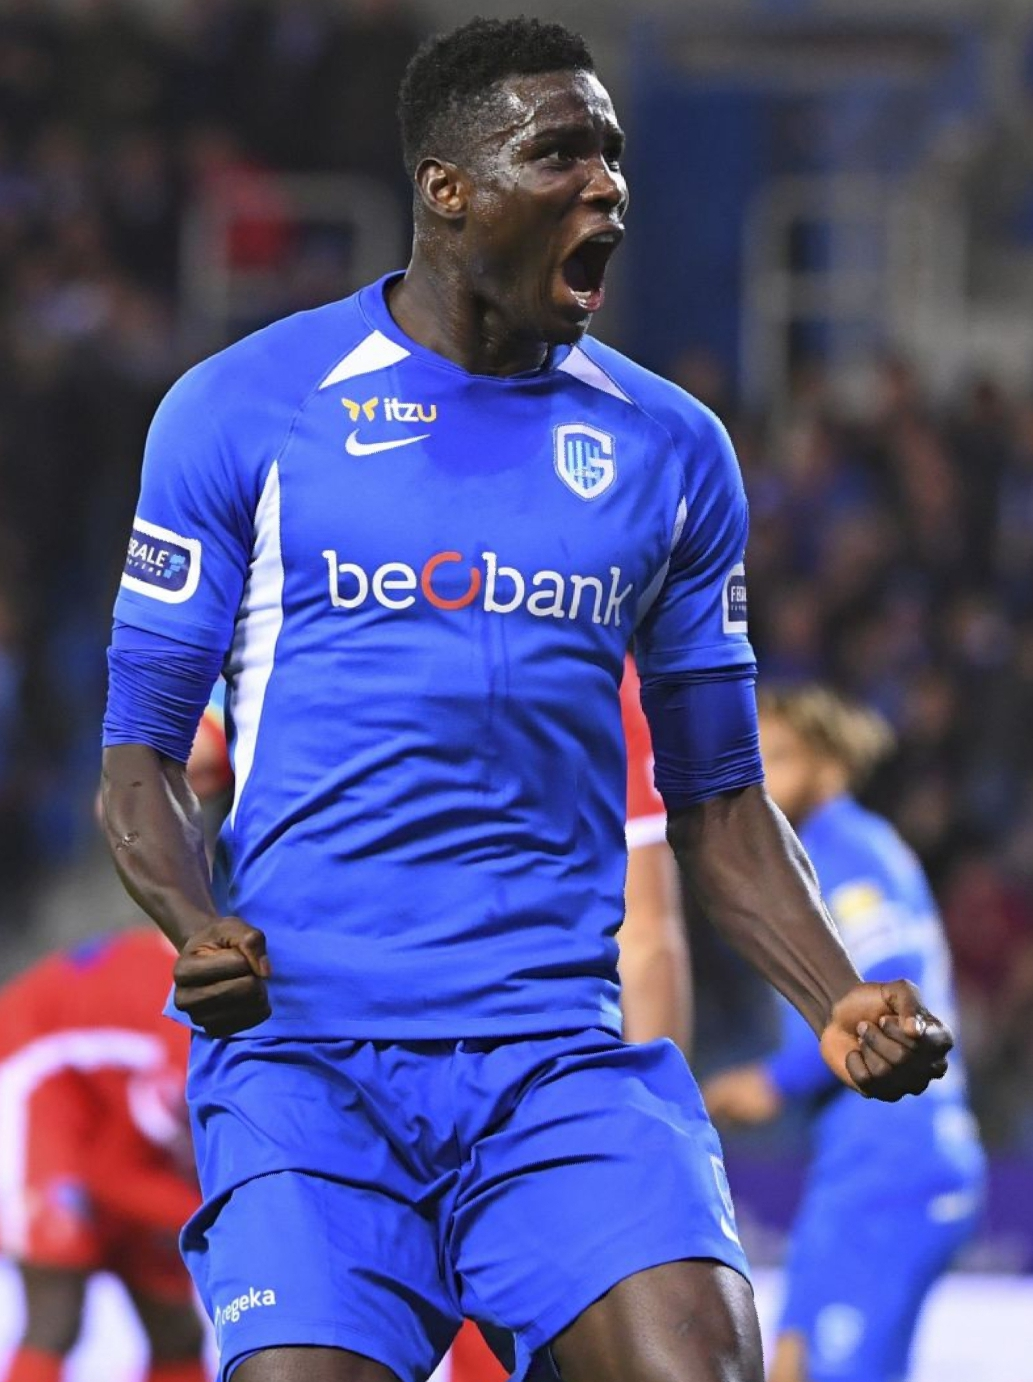 Standard Liege Vs Genk: Onuachu Targets 5th Goal In Five Belgian League Matches